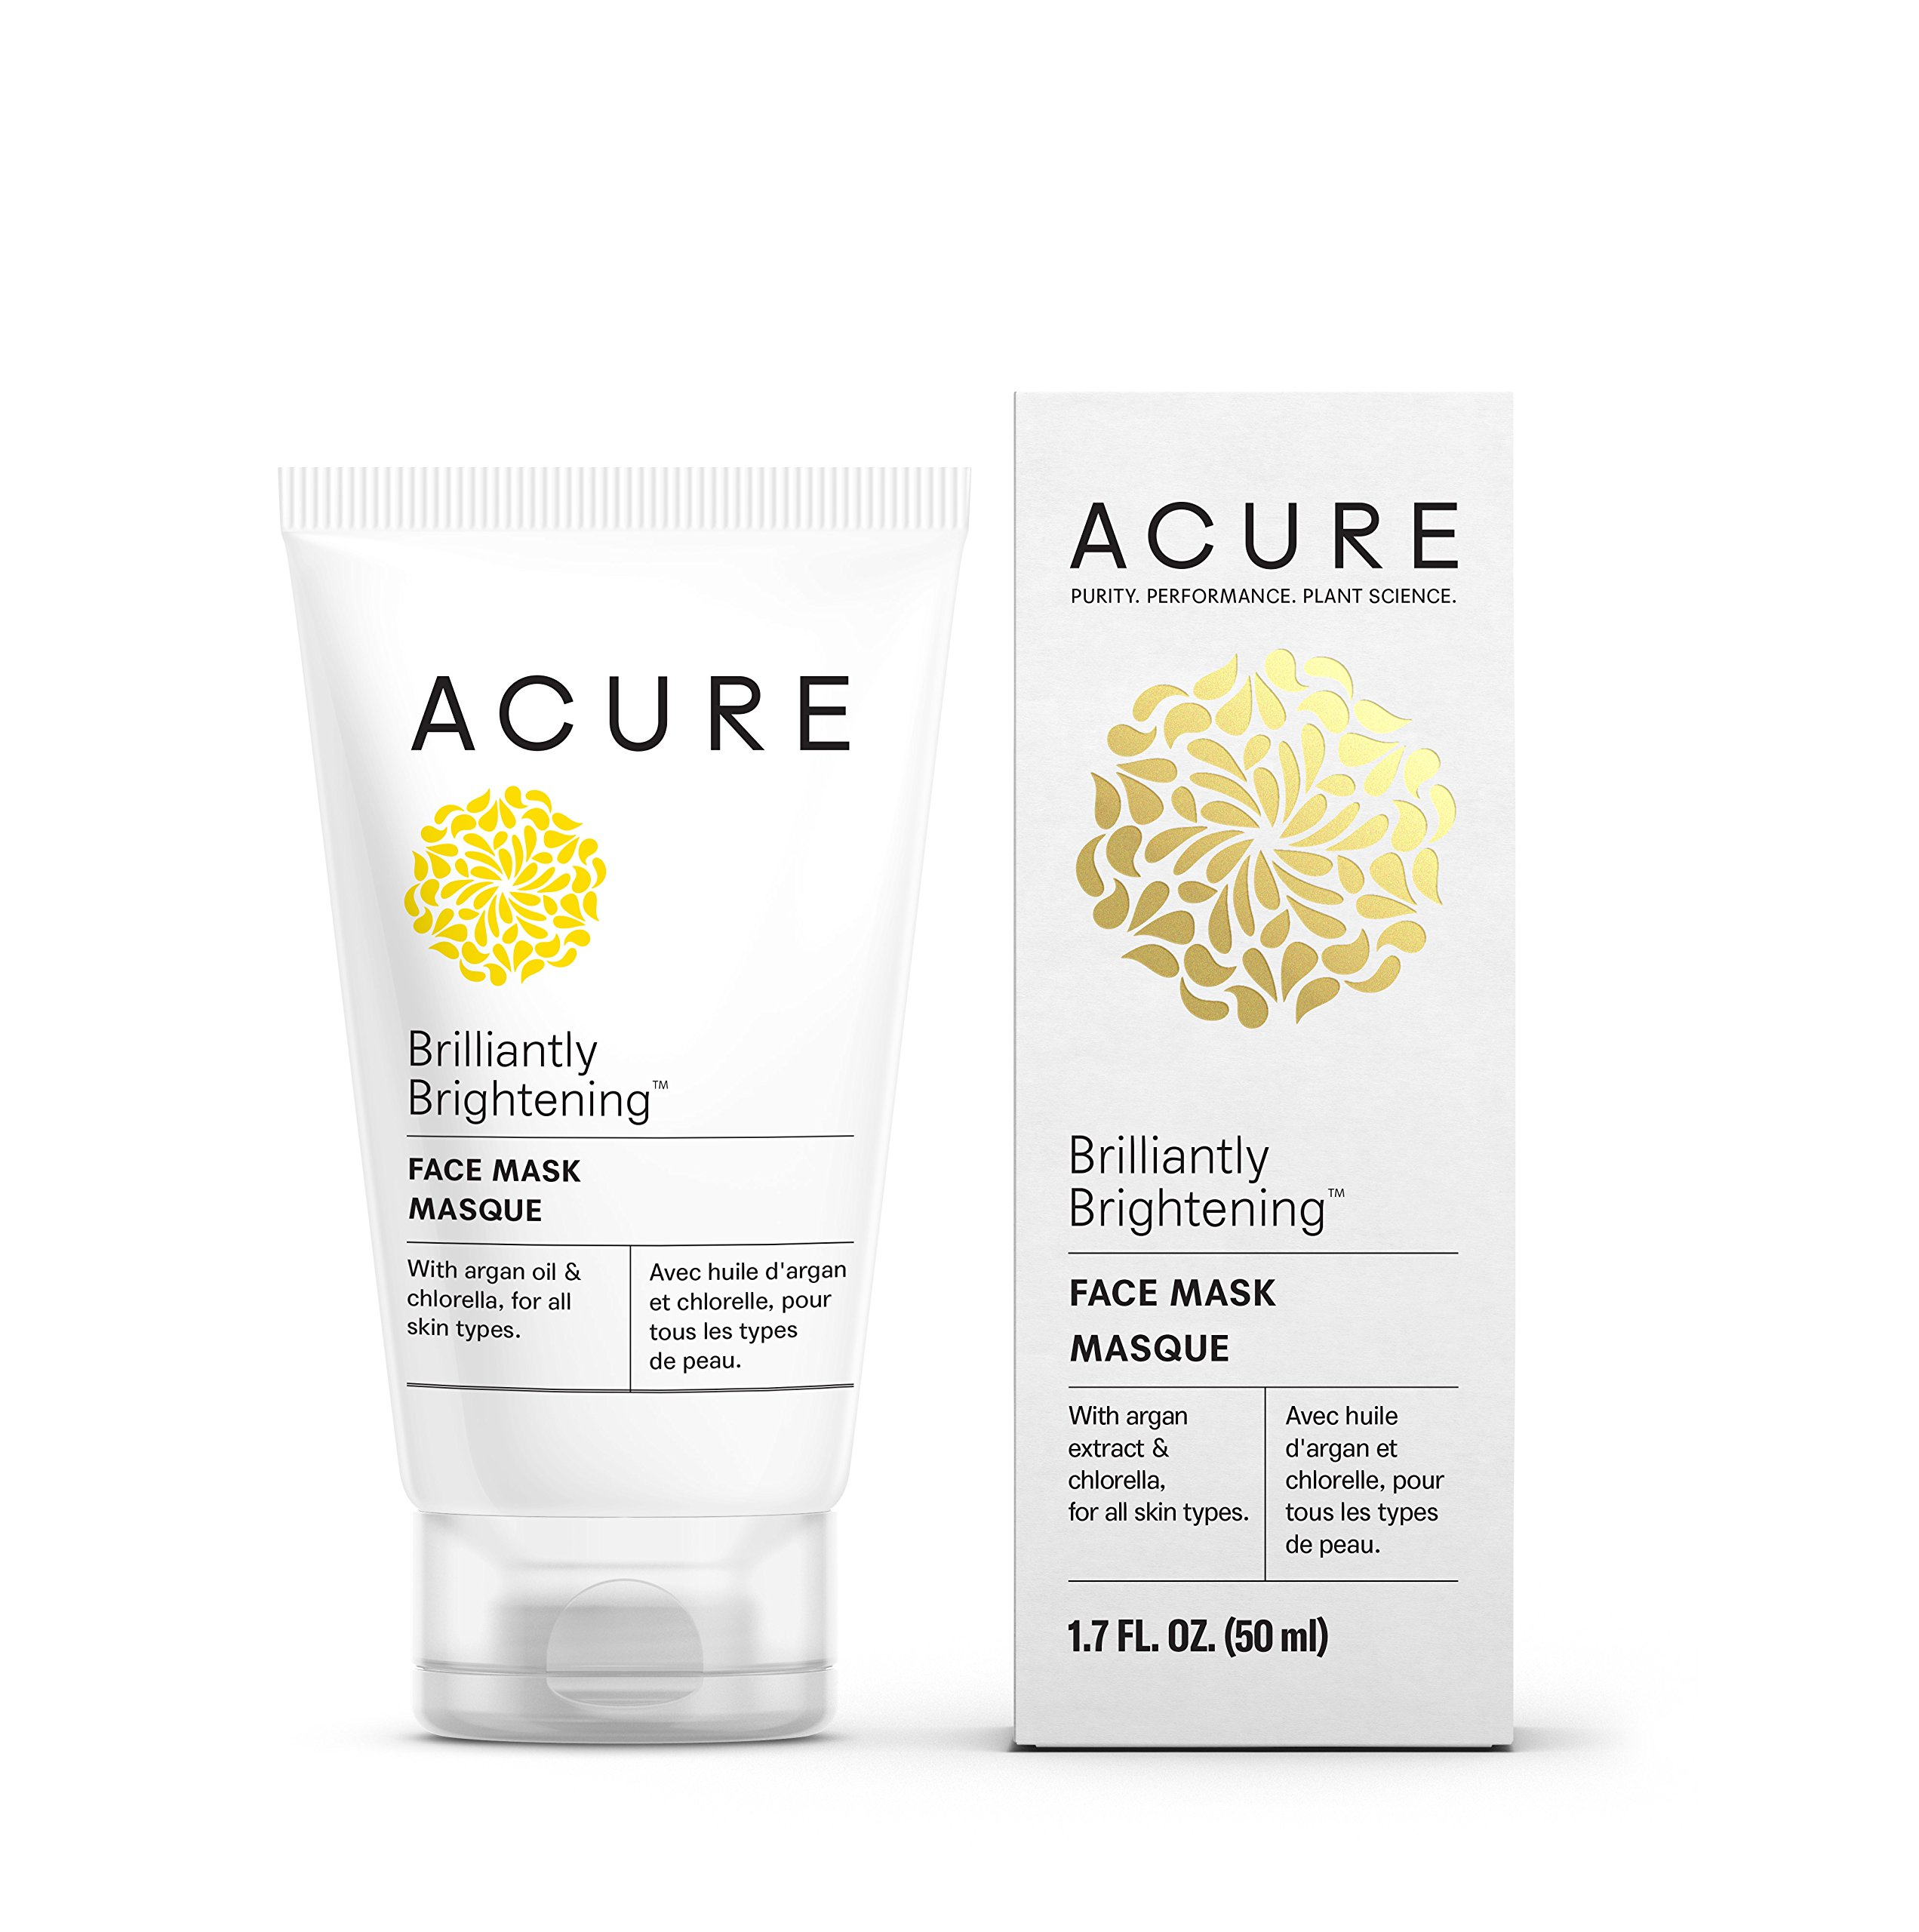 Acure Brilliantly Brightening Fruit Peel, 1.4 Fluid Ounce